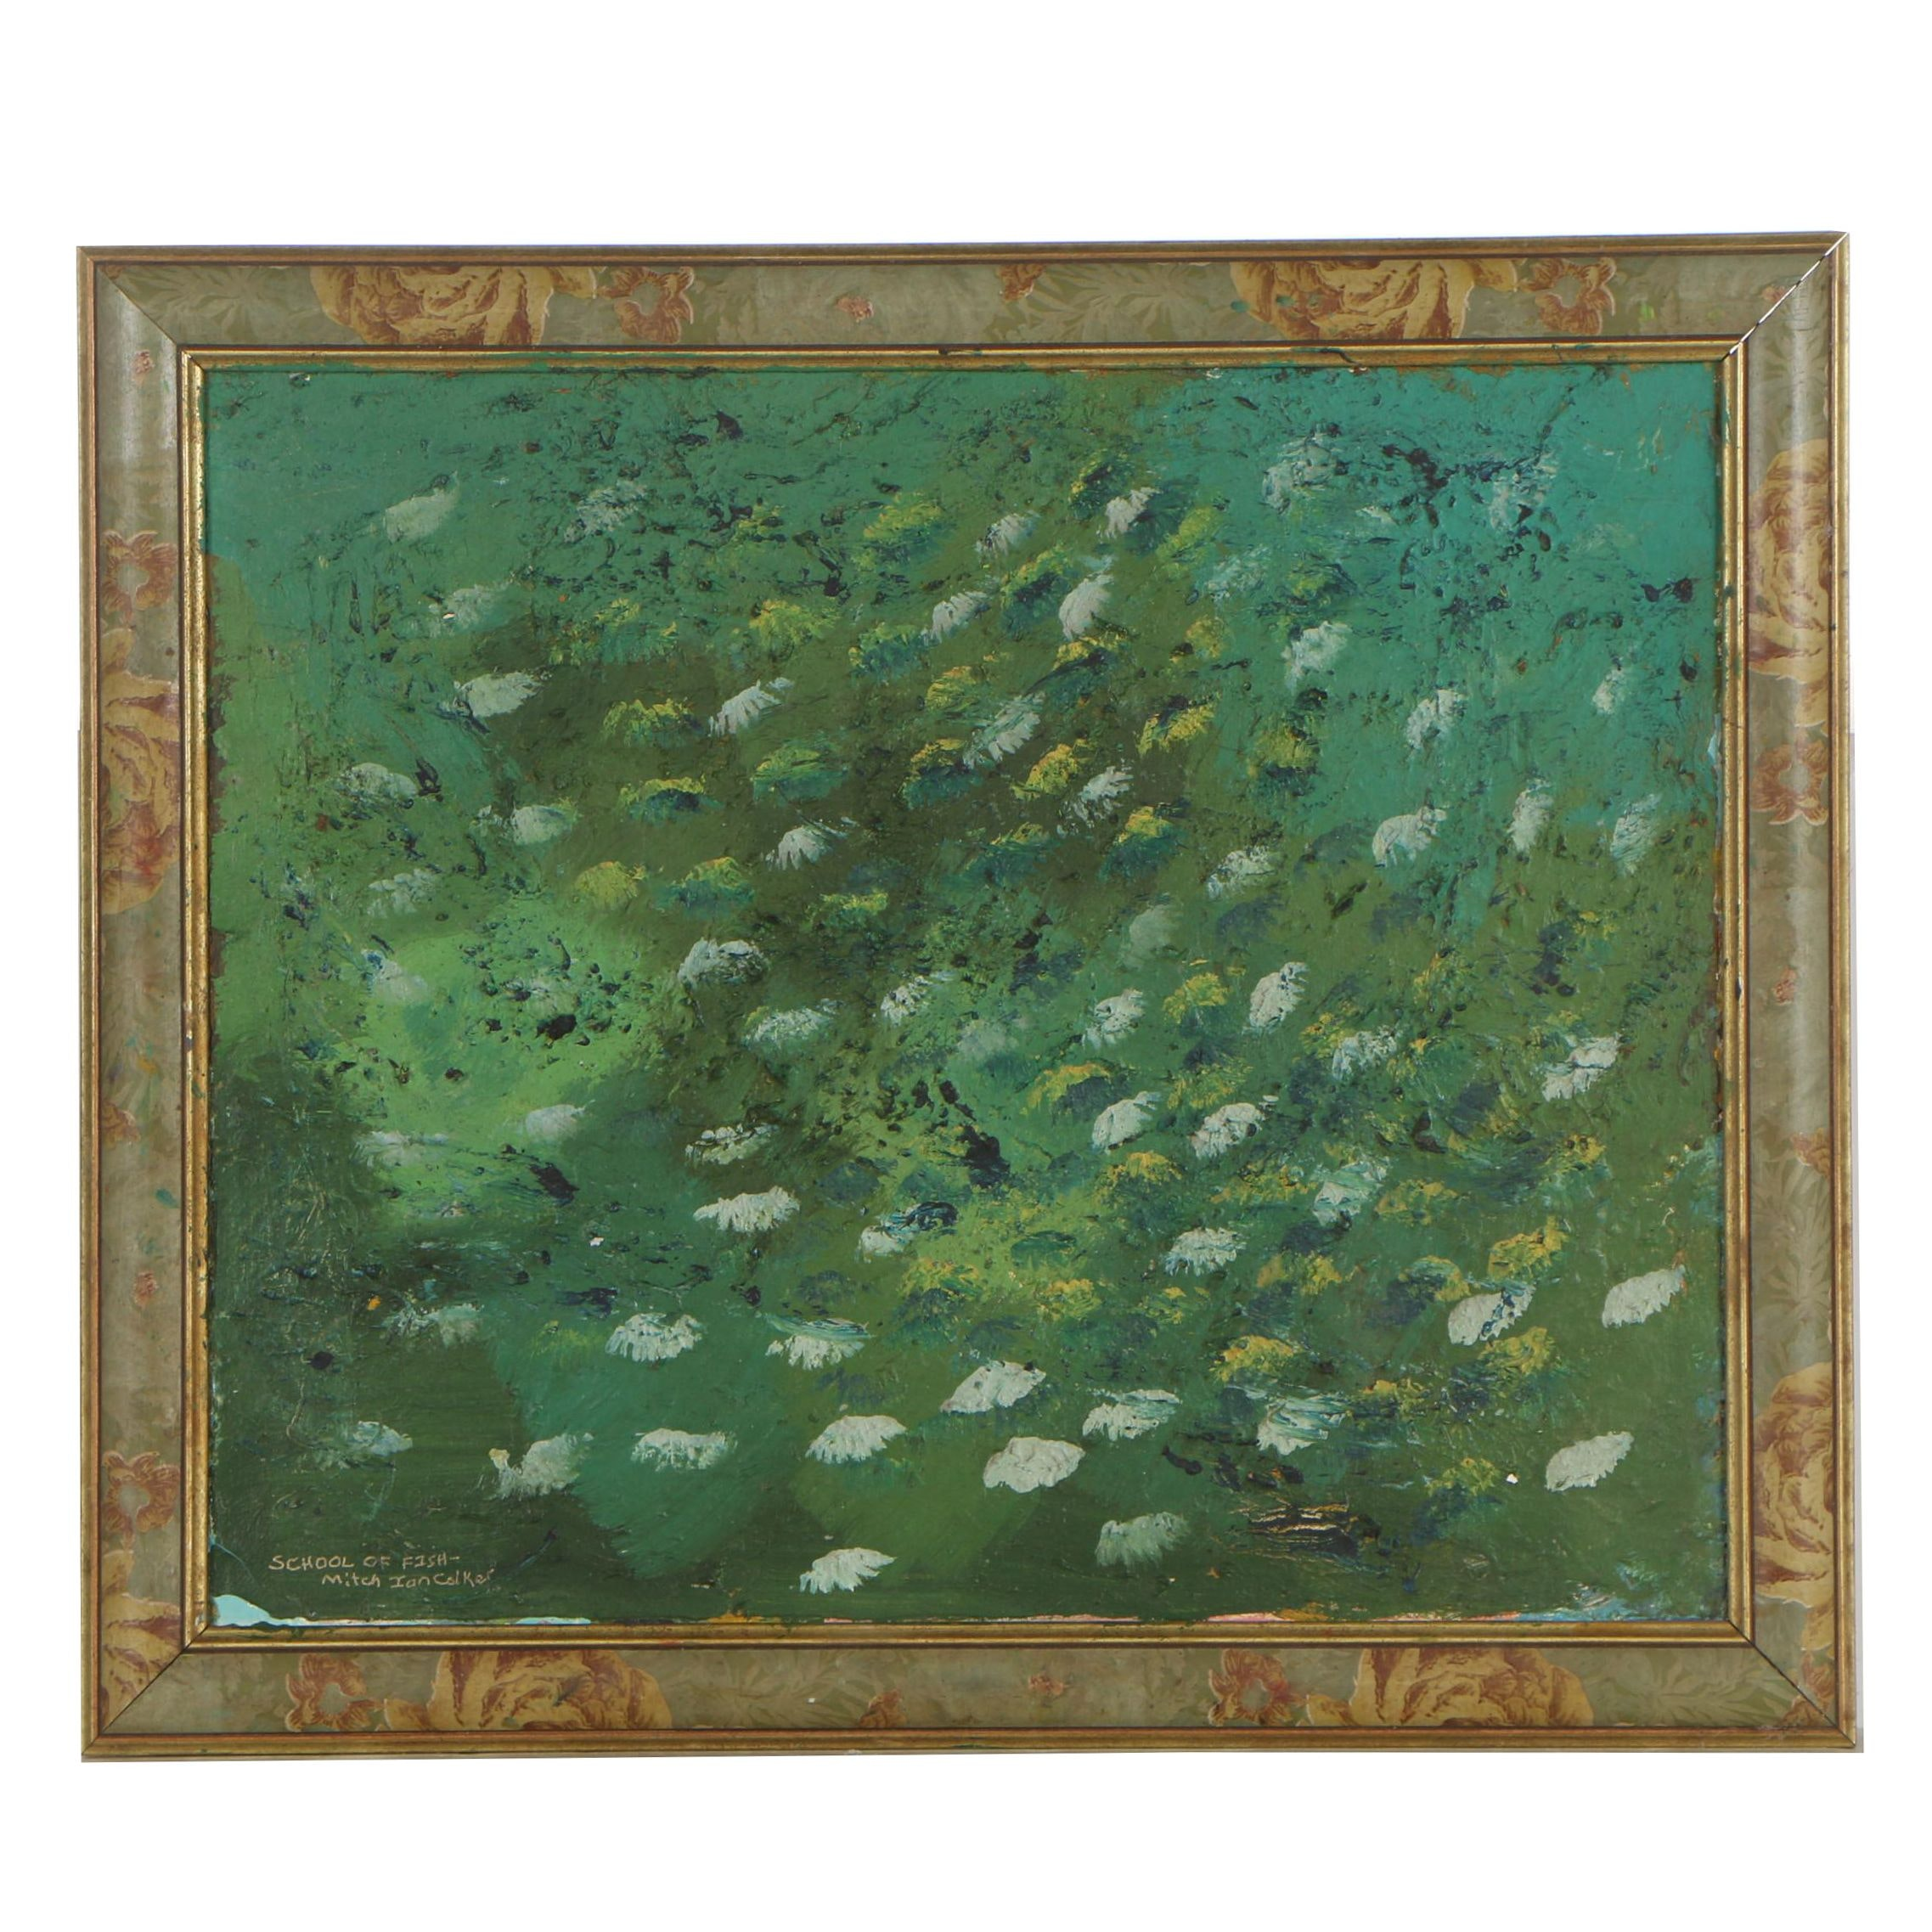 """Mitch Ian Colker Oil Painting """"School of Fish"""""""